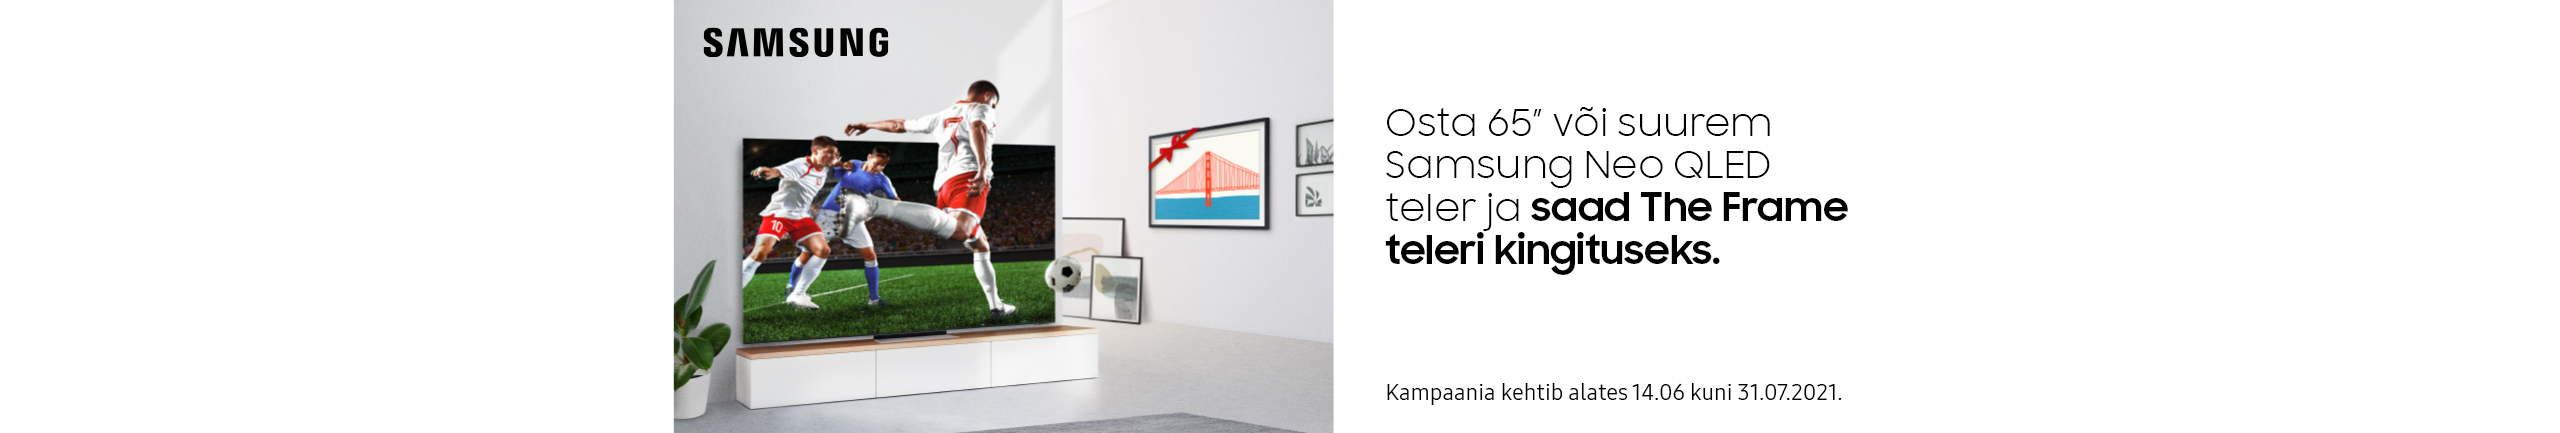 """Buy a Samsung Neo QLED 65"""" or bigger TV and get The Frame TV as a gift!"""